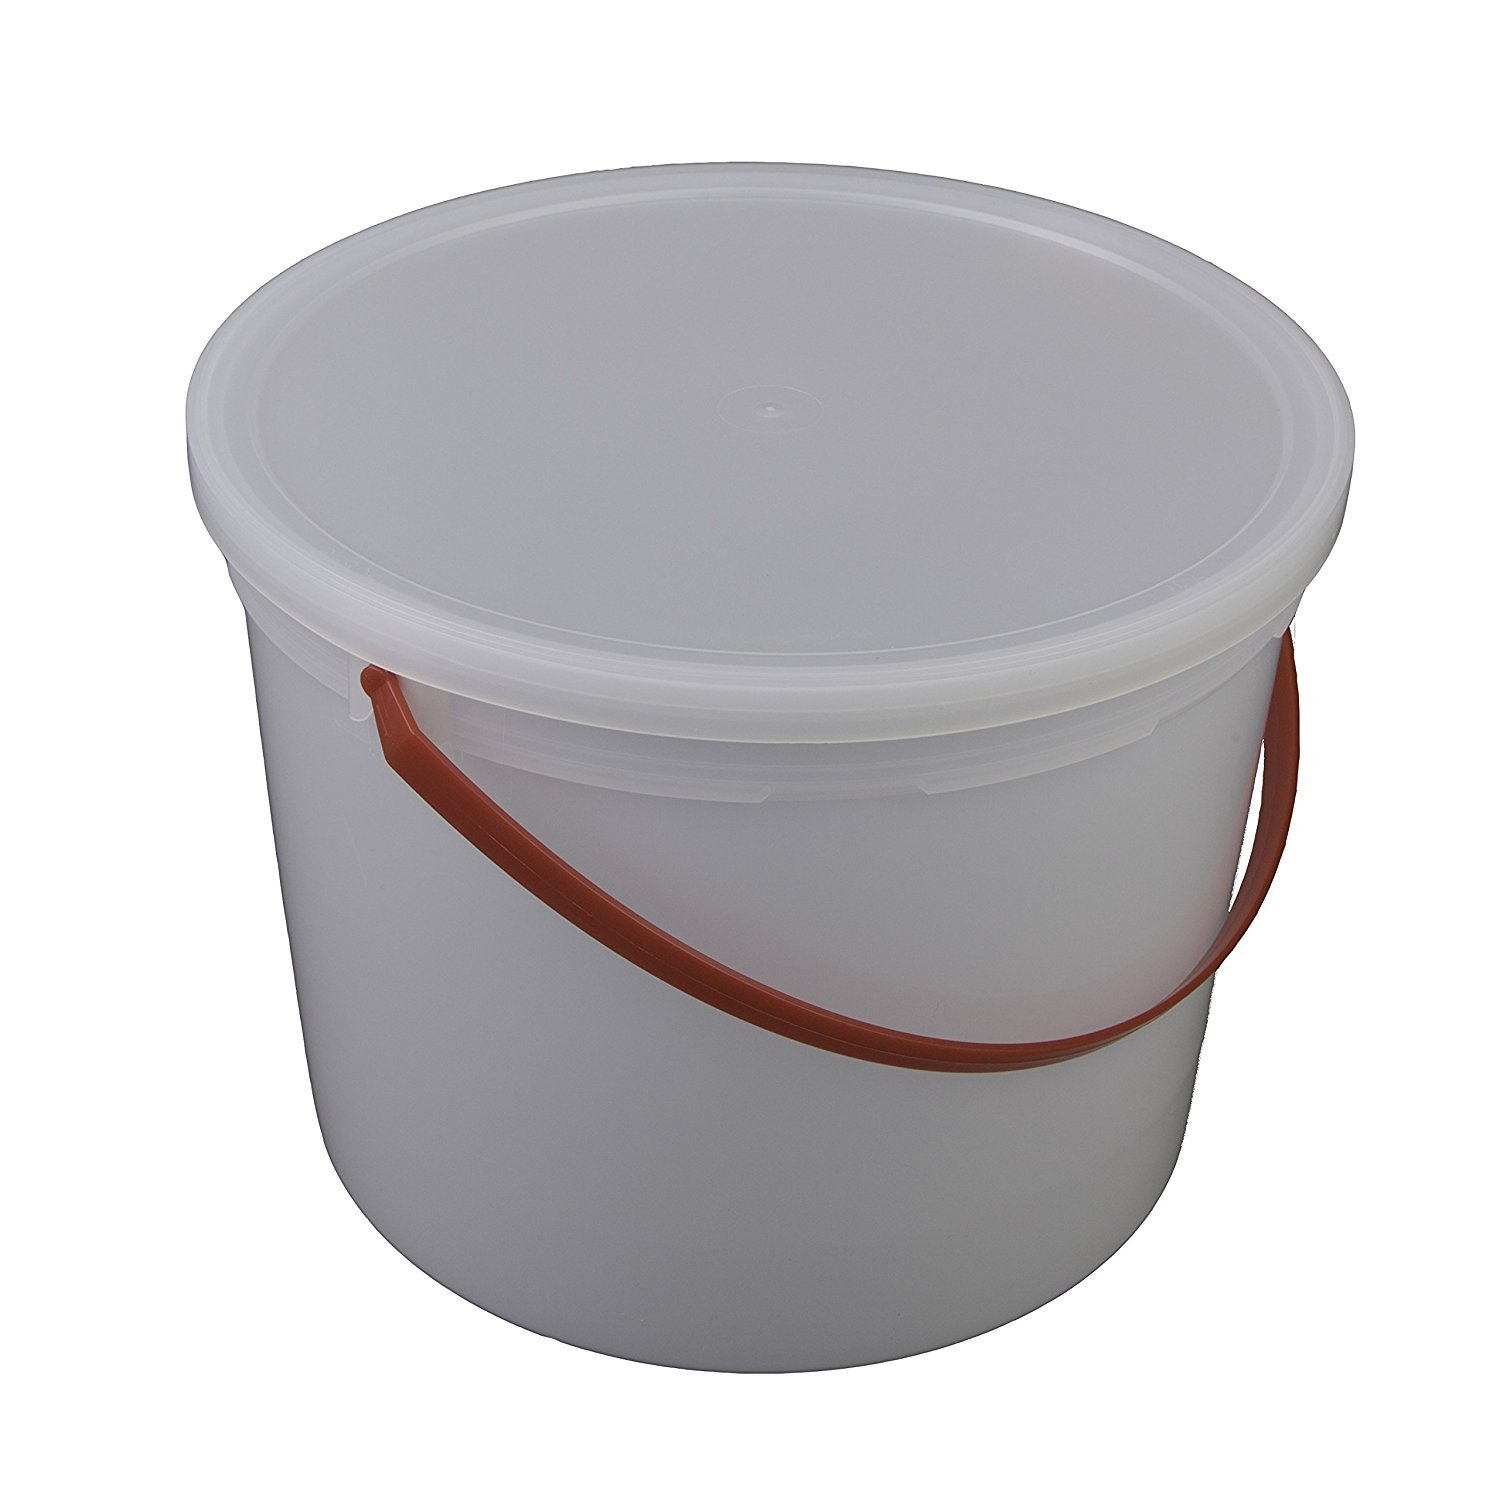 Consolidated Plastics Pail with Handle, HDPE, 5 Quart, Natural, 10 Piece